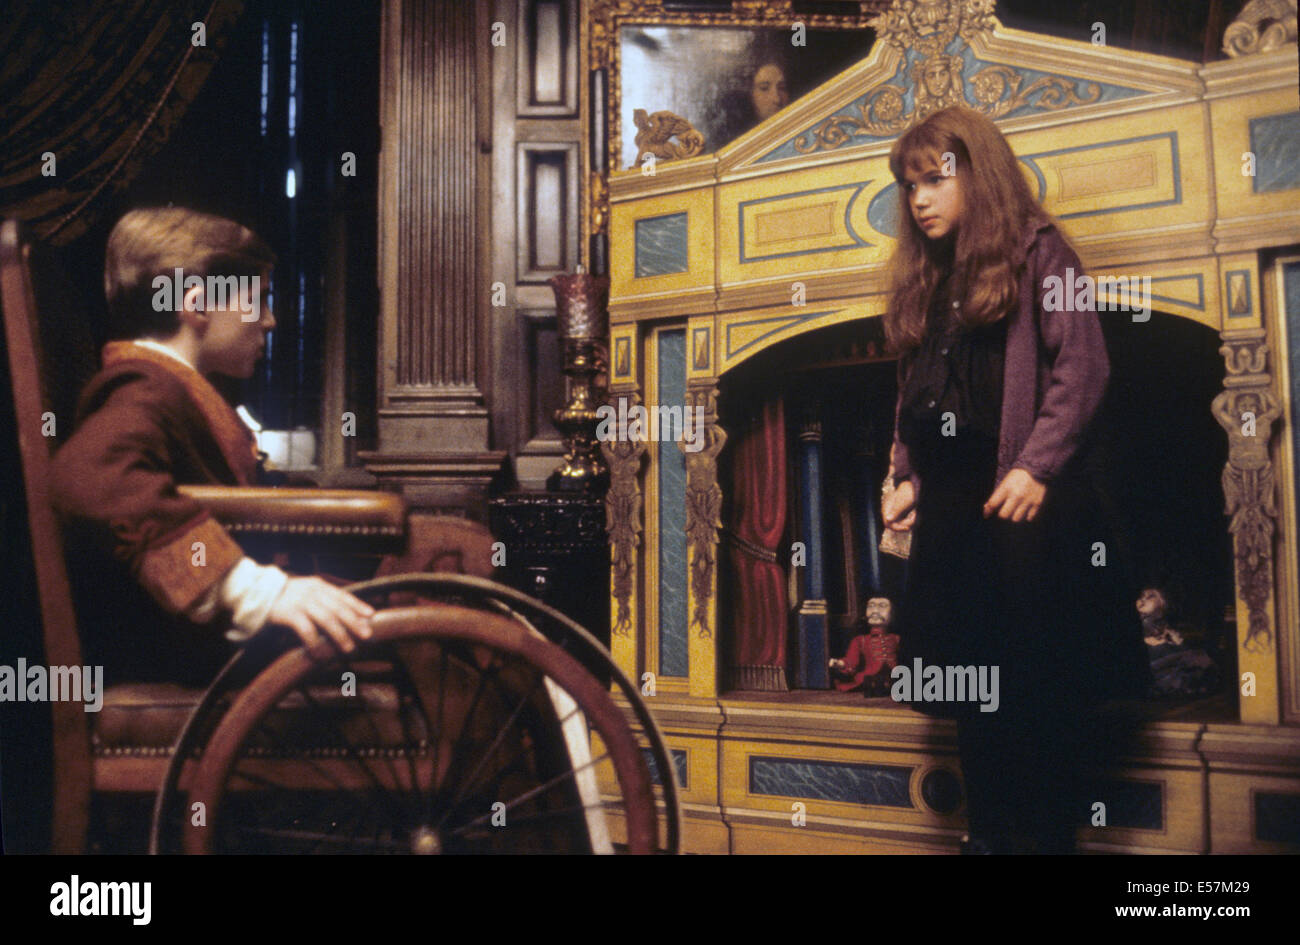 Heydon prowse stock photos heydon prowse stock images - The secret garden 1993 full movie ...